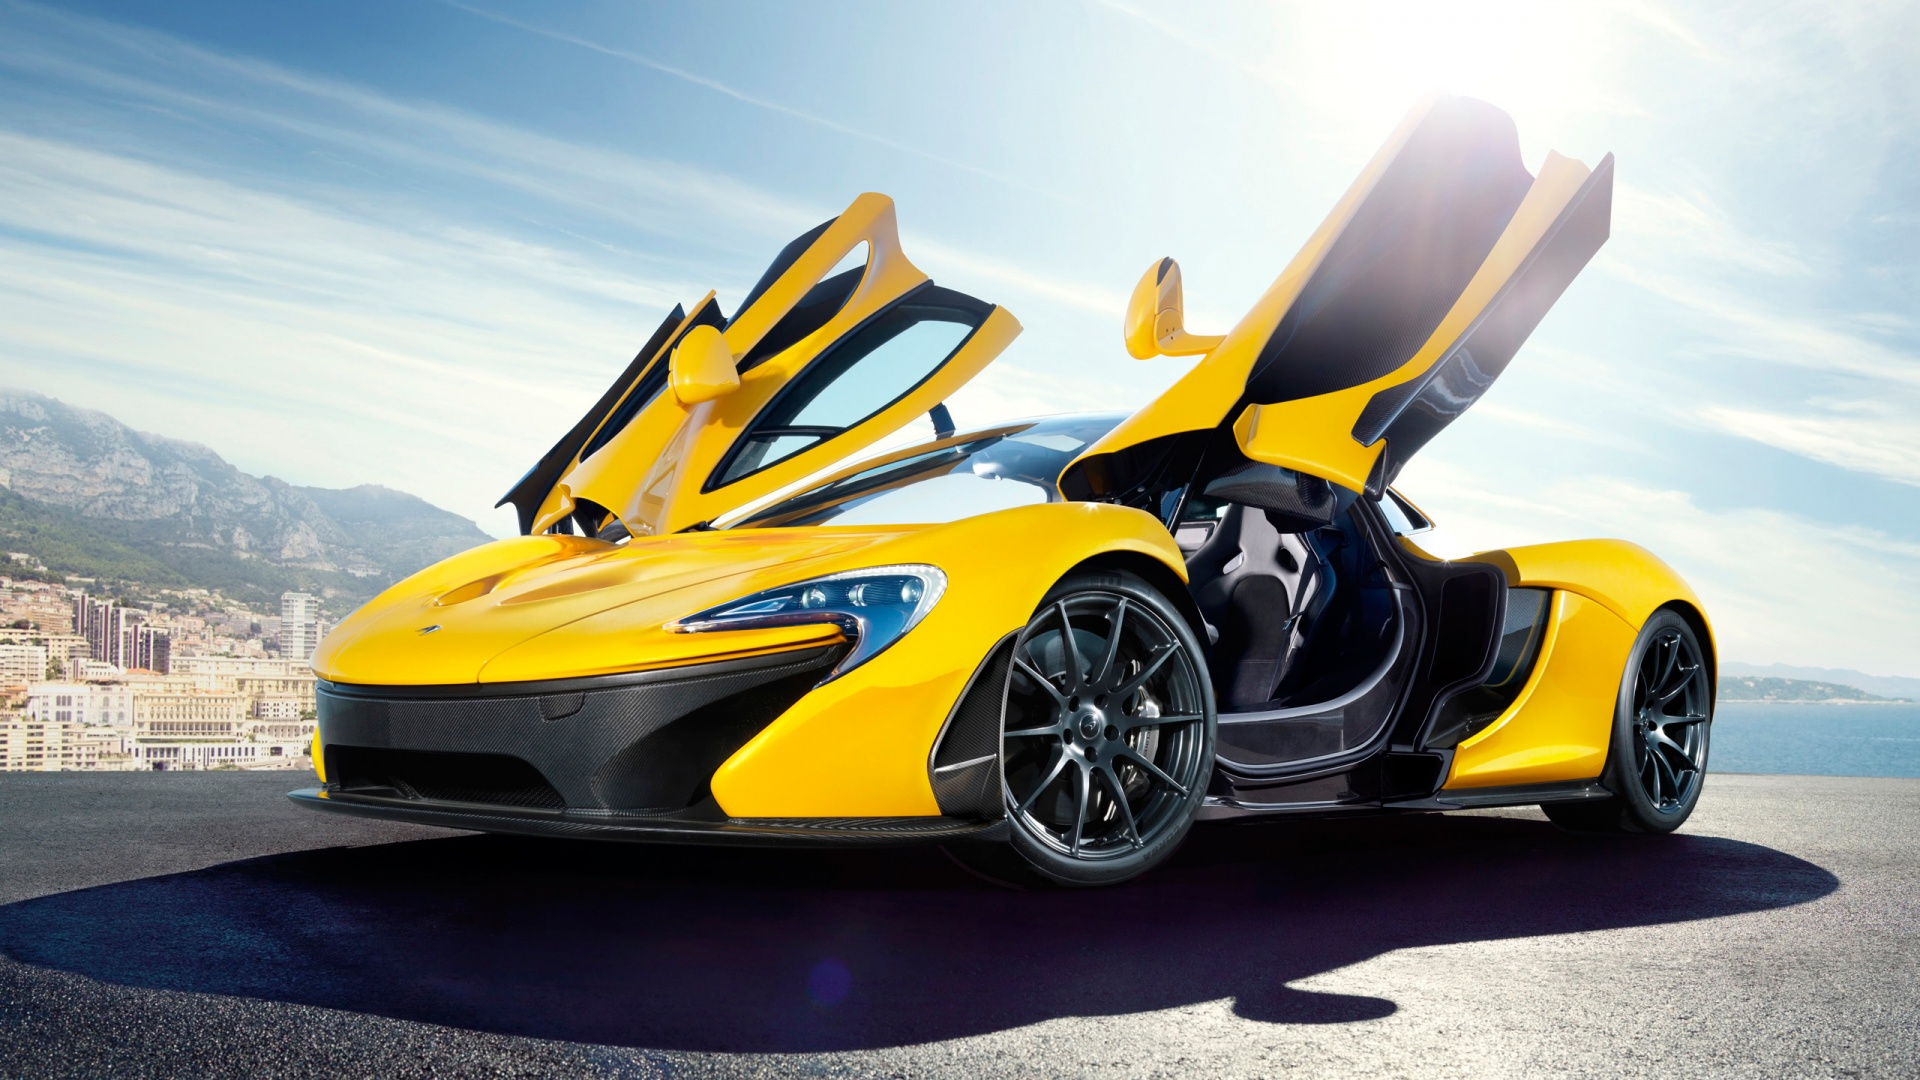 Hd wallpapers of cars - 10 Cool Hd Car Wallpapers